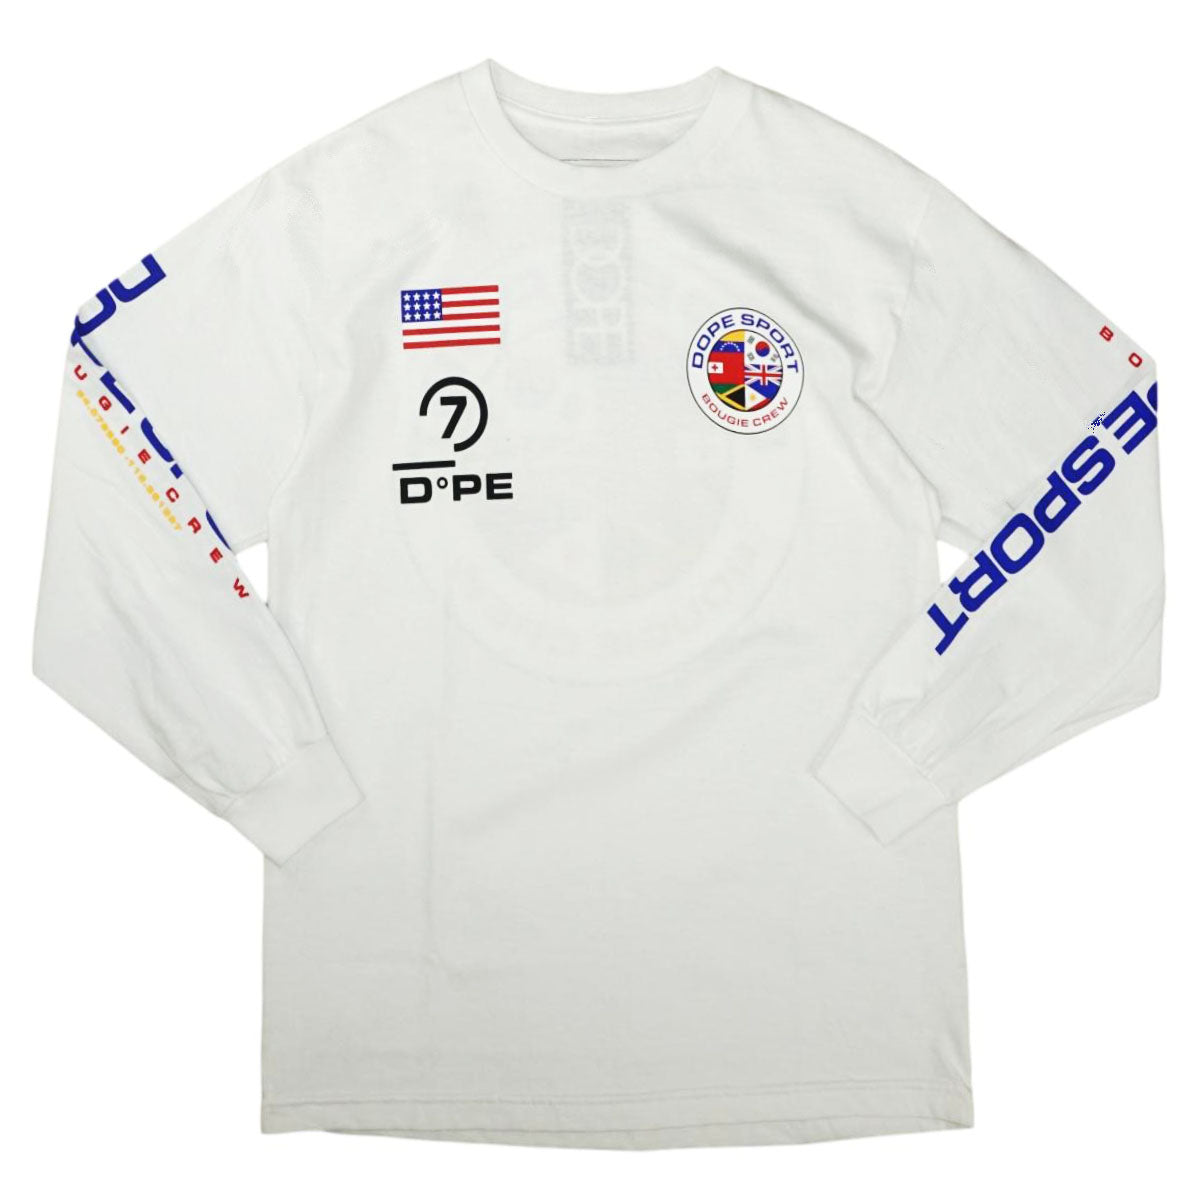 World Wide L/S Tee (White) /D12